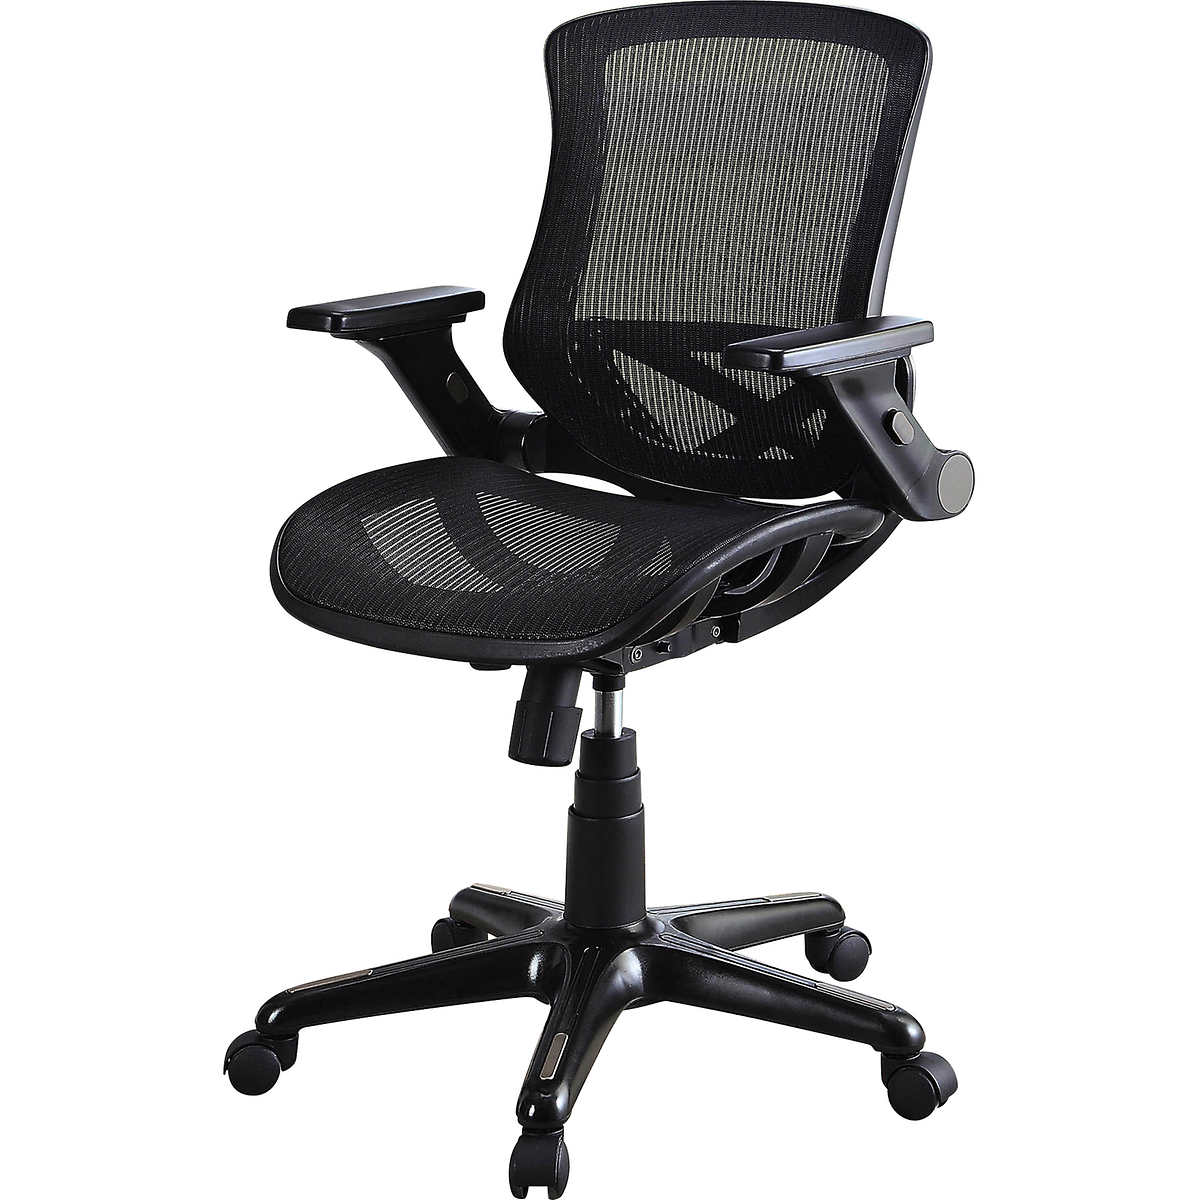 Mesh Desk Chair Costco Mesh Office Chairs Costco Chairs